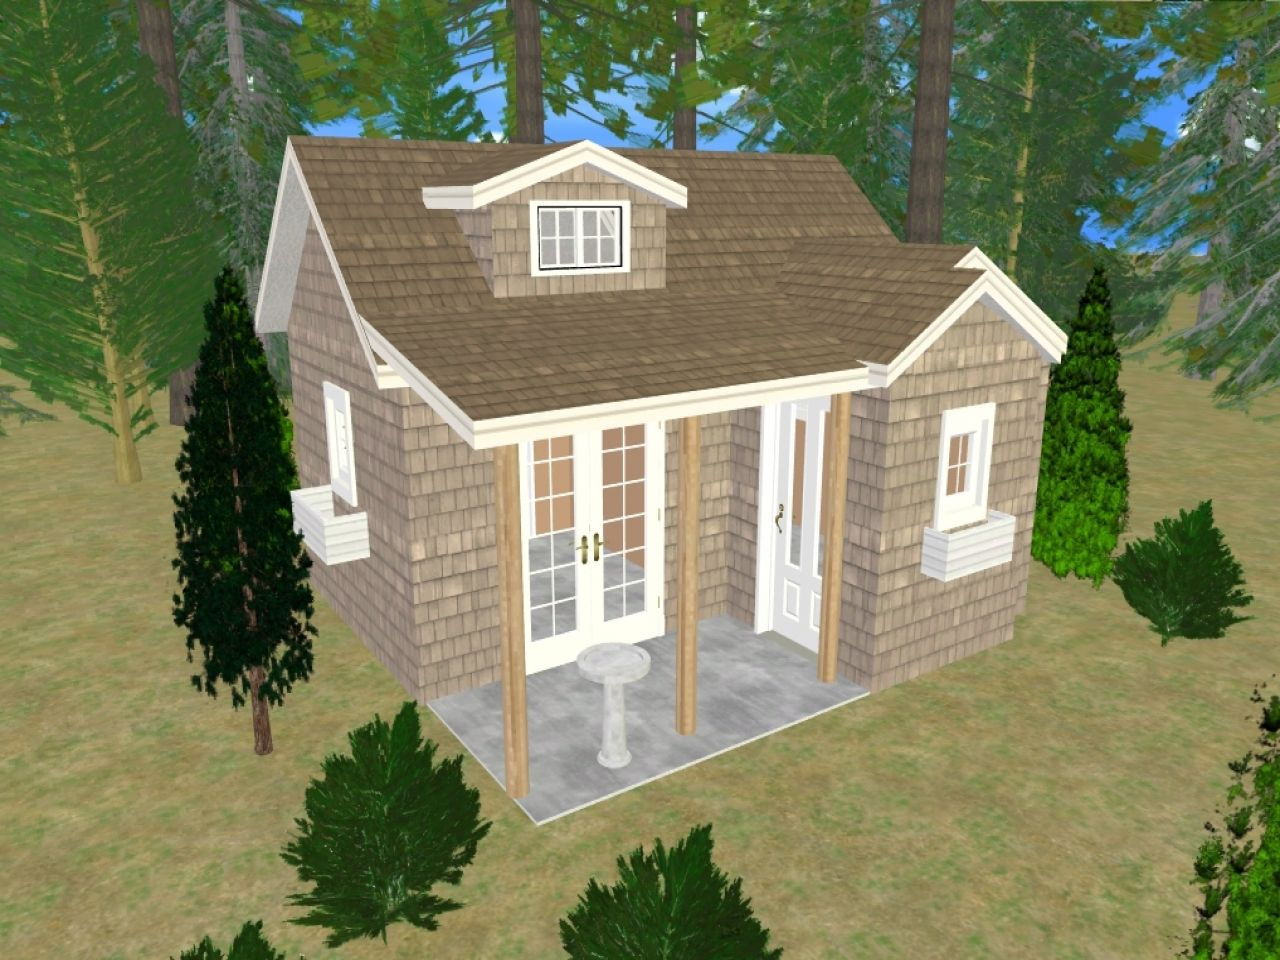 Storage Sheds Turned Into Houses Small Shed House Plans intended for Small Farmhouse Plans With Pictures